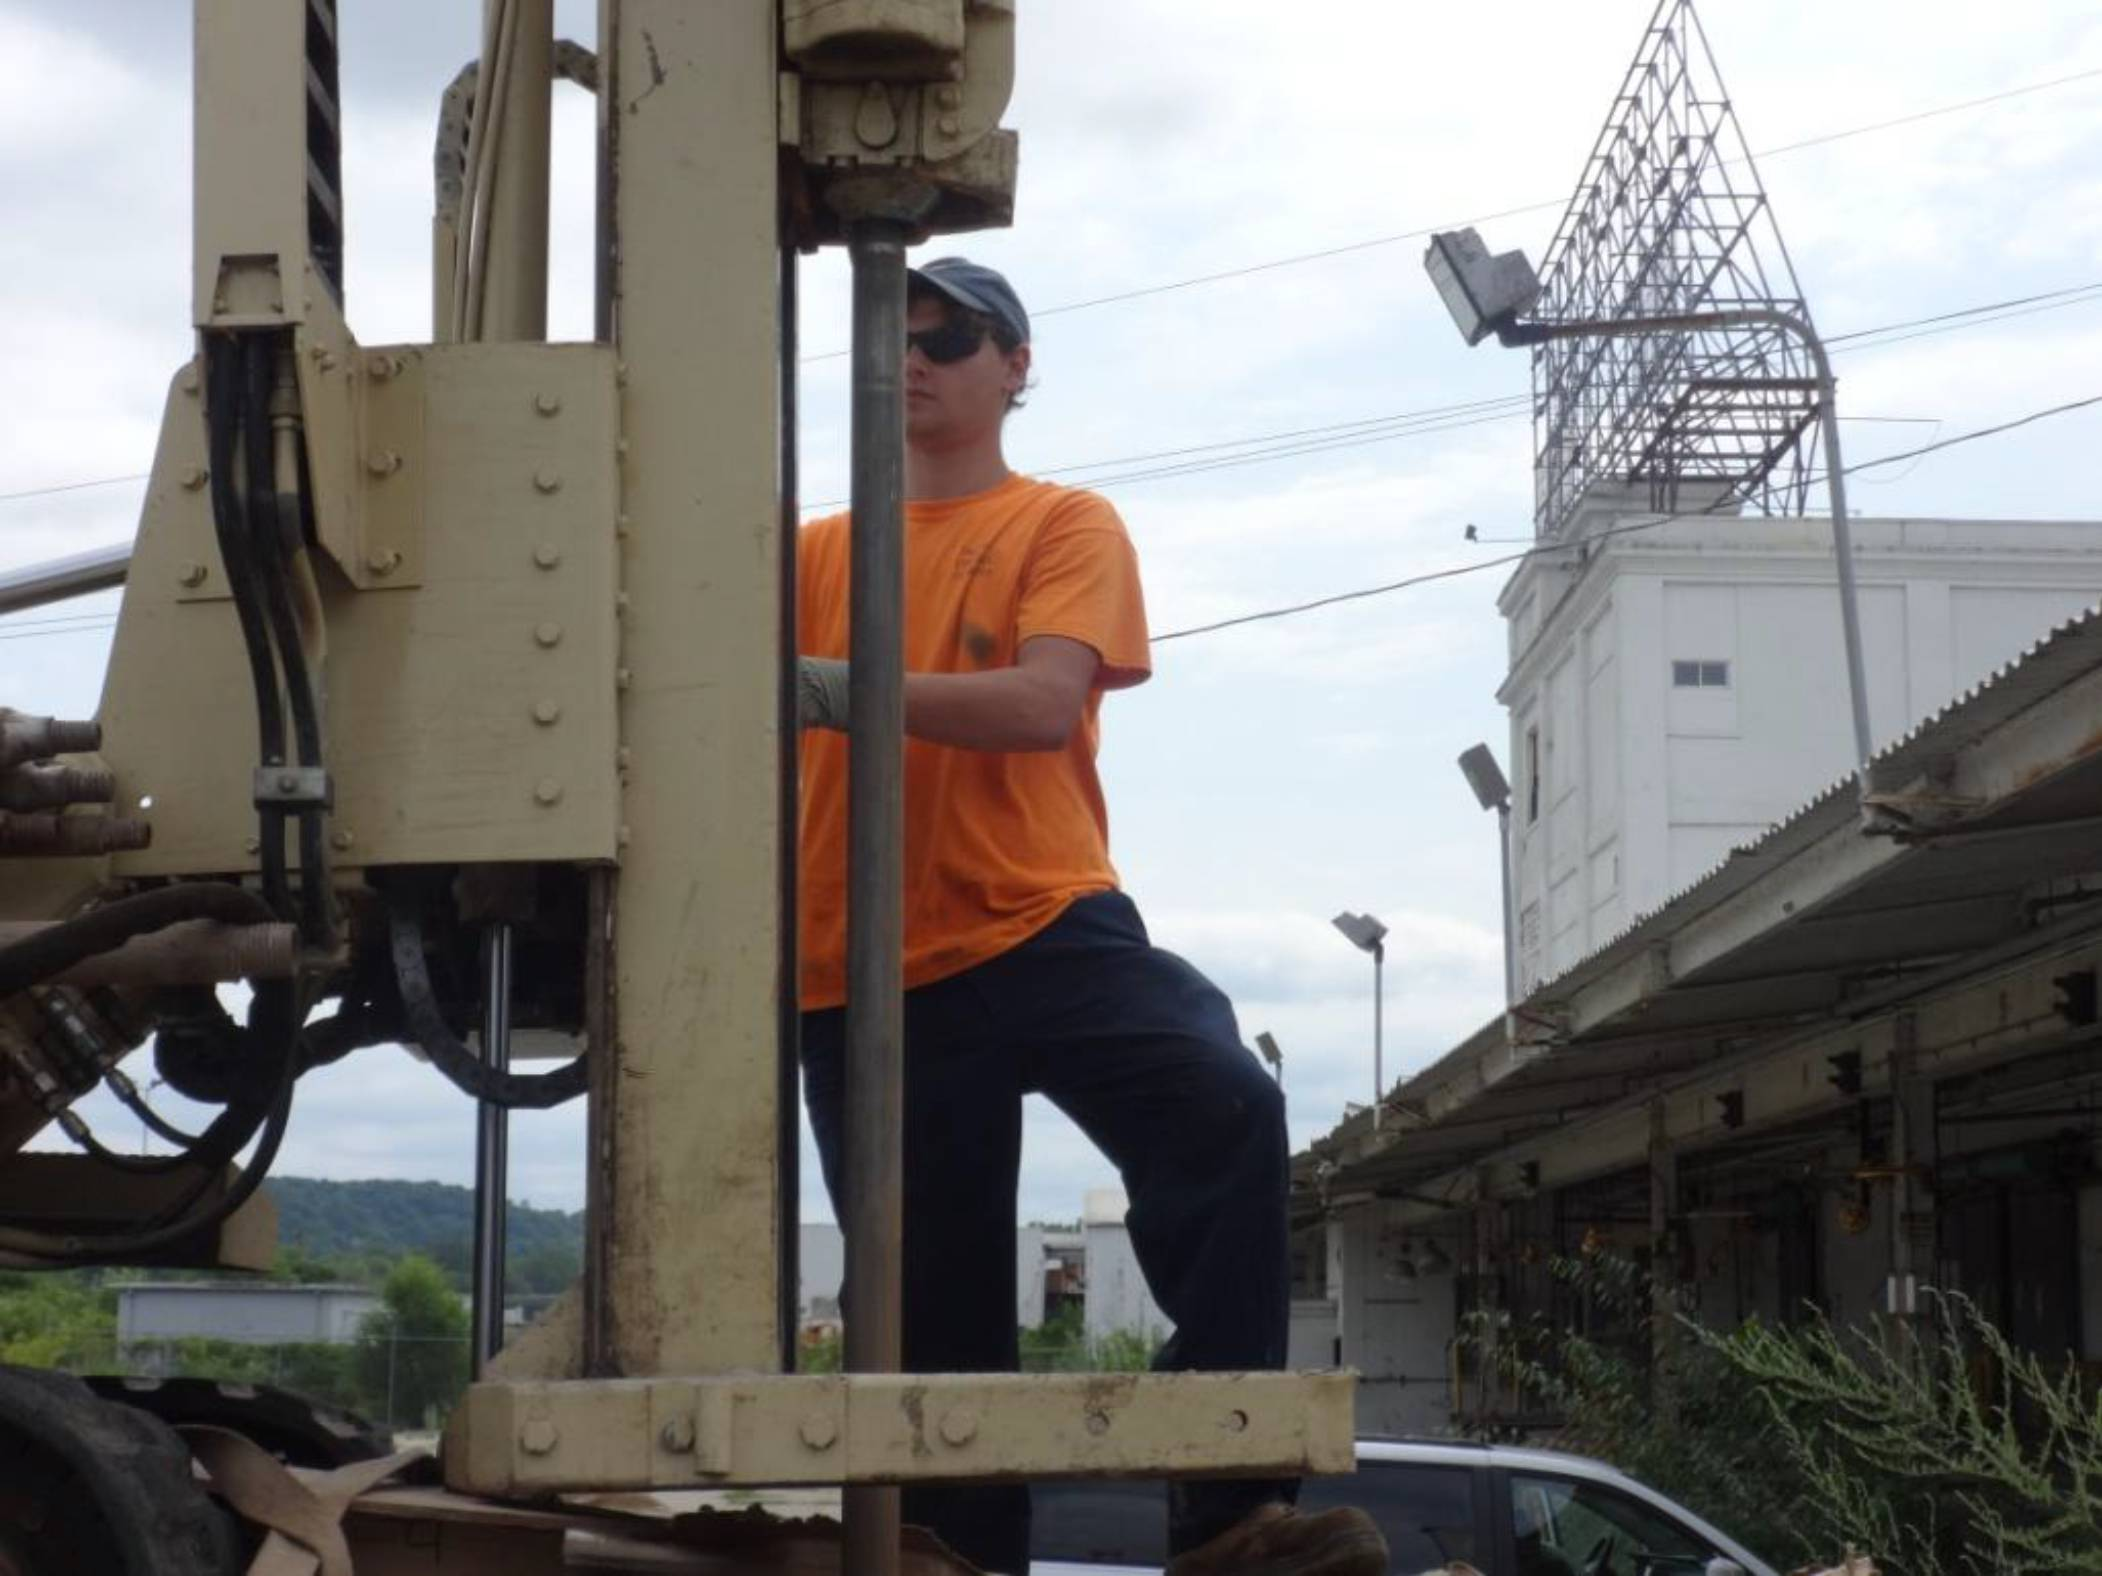 A member of Talon Drilling Company unloads the Geoprobe, which was the piece of equipment used throughout the property to drill for subsurface samples.